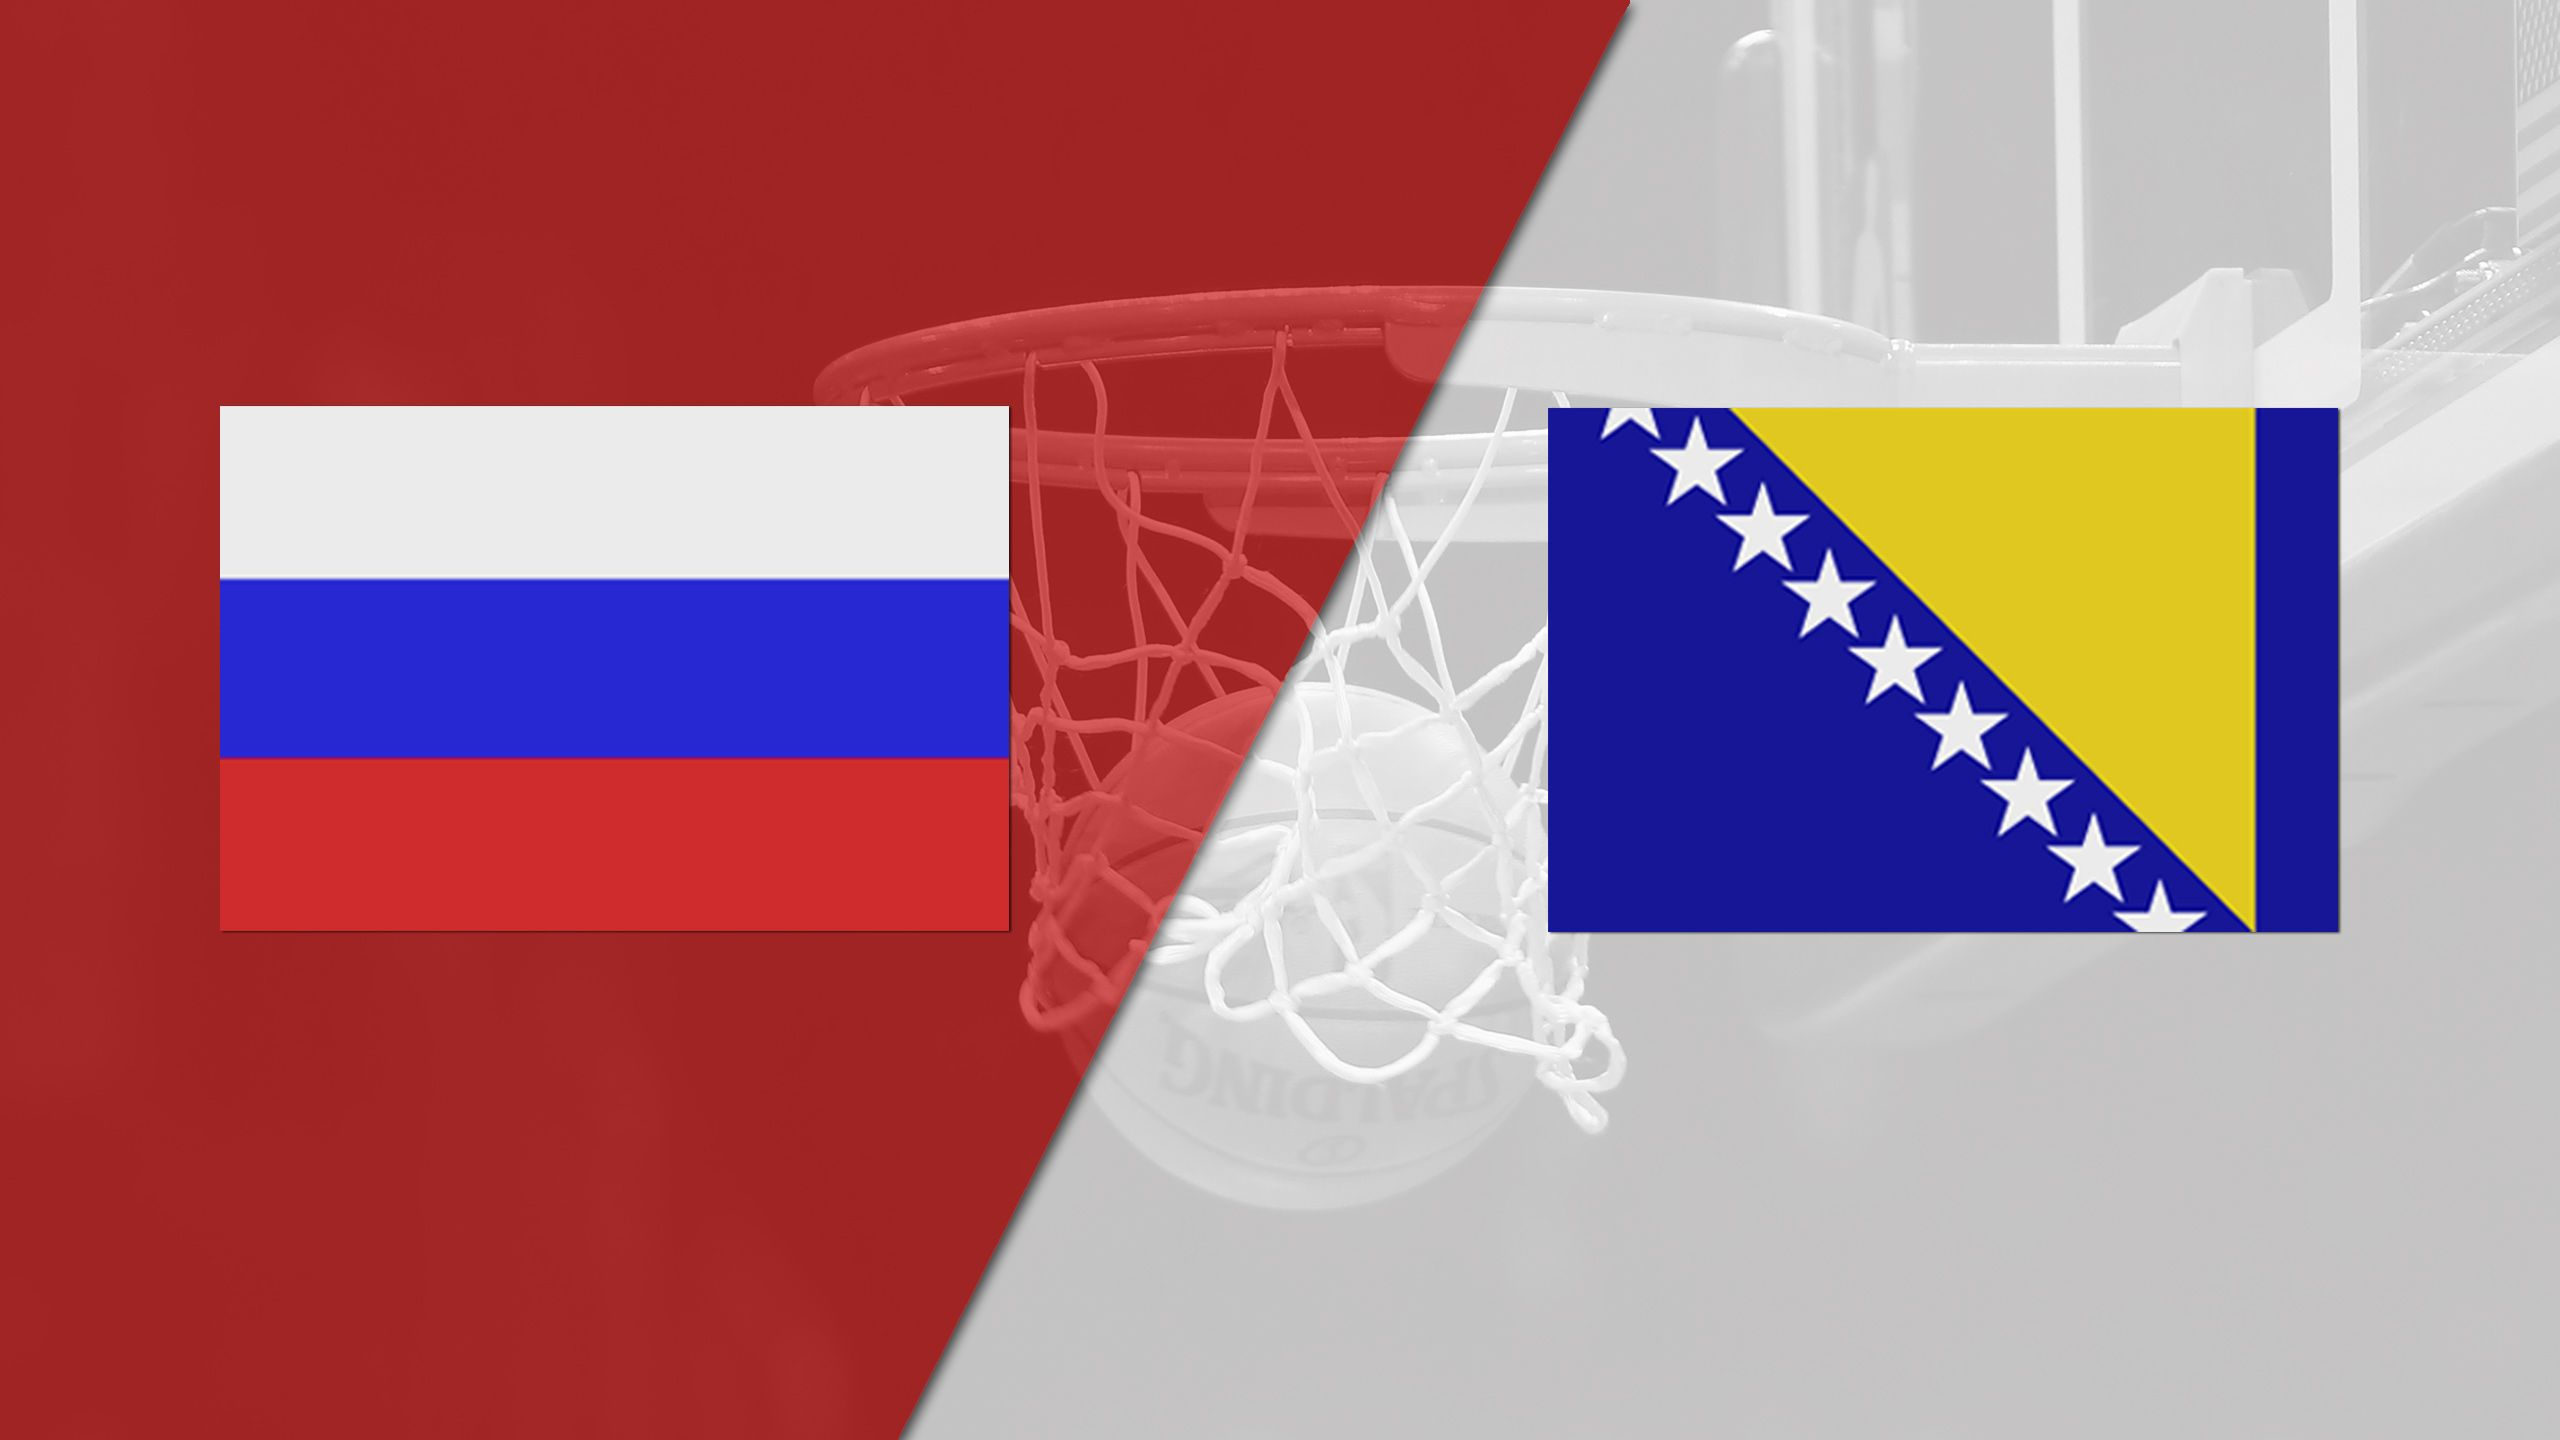 Russia vs. Bosnia-Herzegovina (FIBA World Cup 2019 Qualifier)